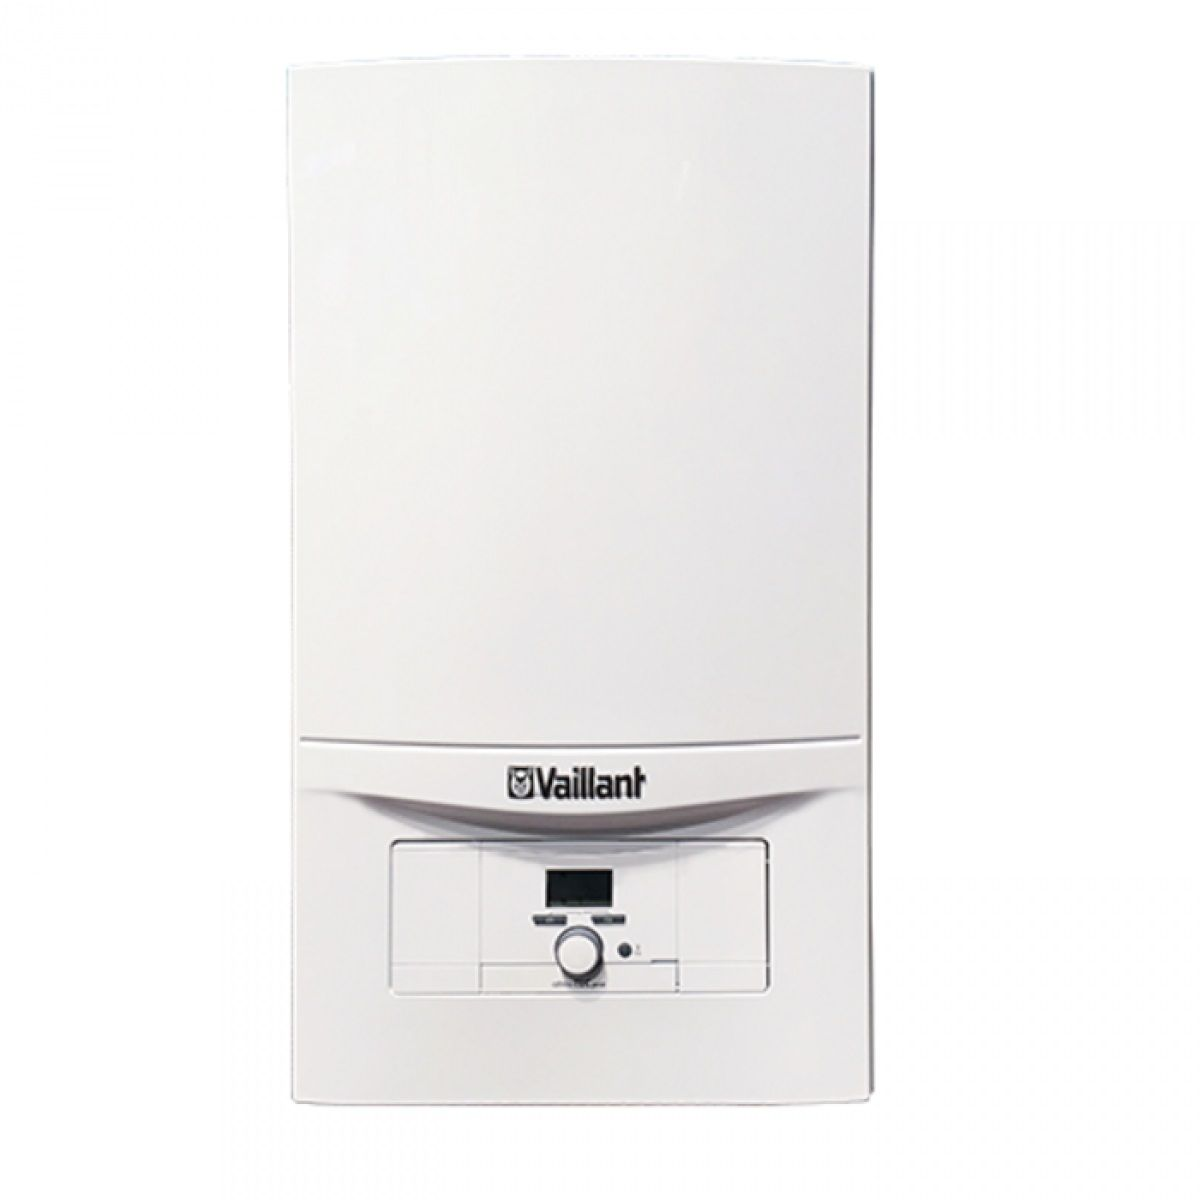 Газовый котел VAILLANT VUW 200/5-5 atmoTEC plus